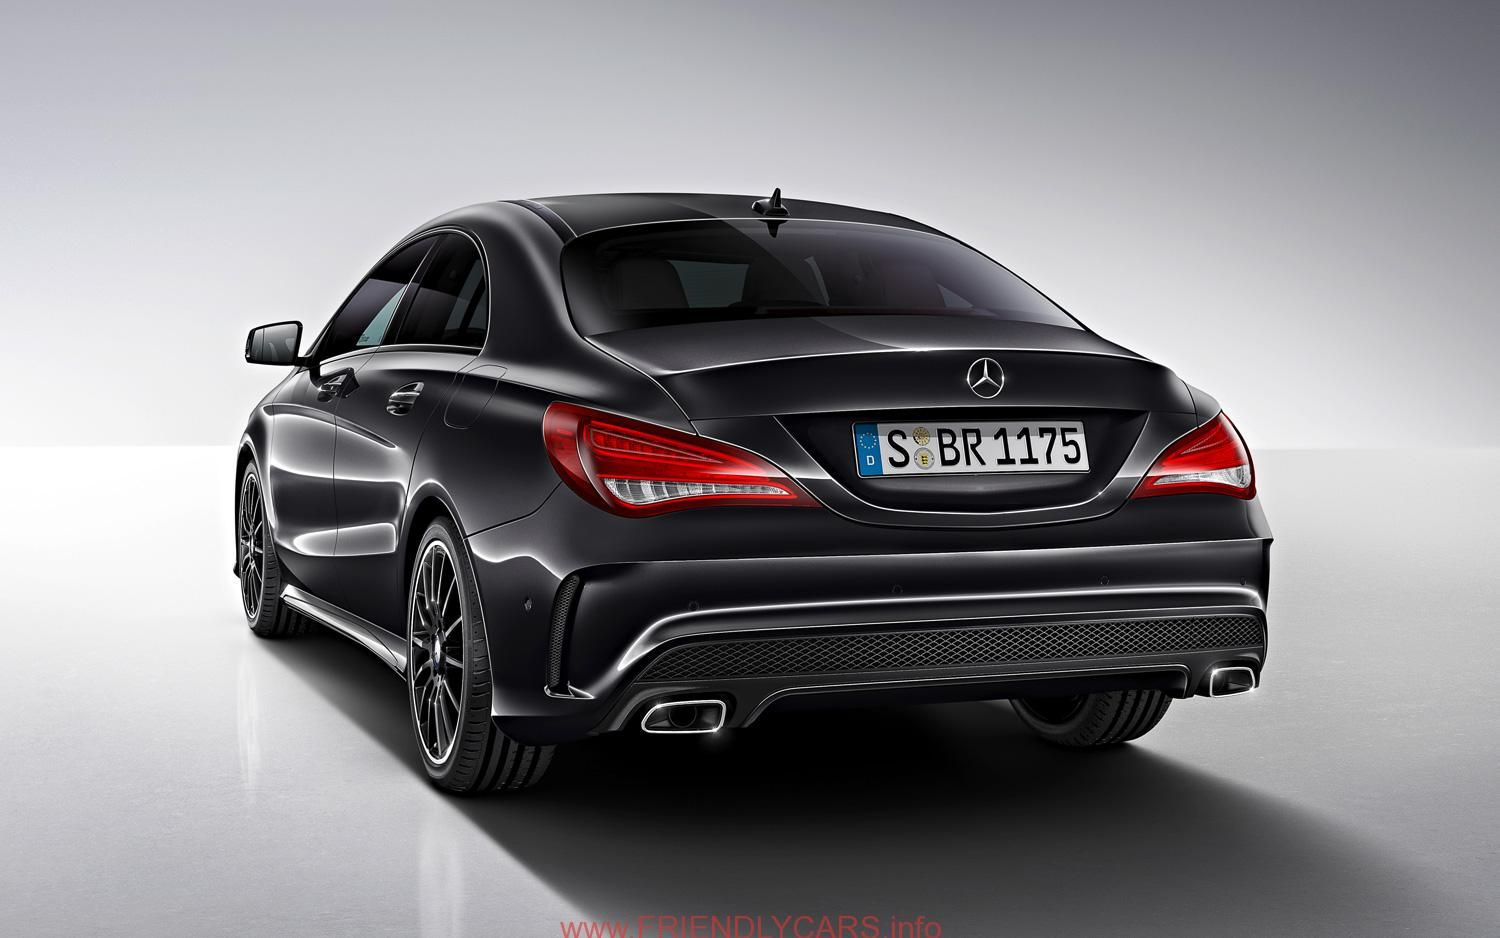 Awesome mercedes benz cla black car images hd mercedes benz cla class price modifications pictures moibibiki